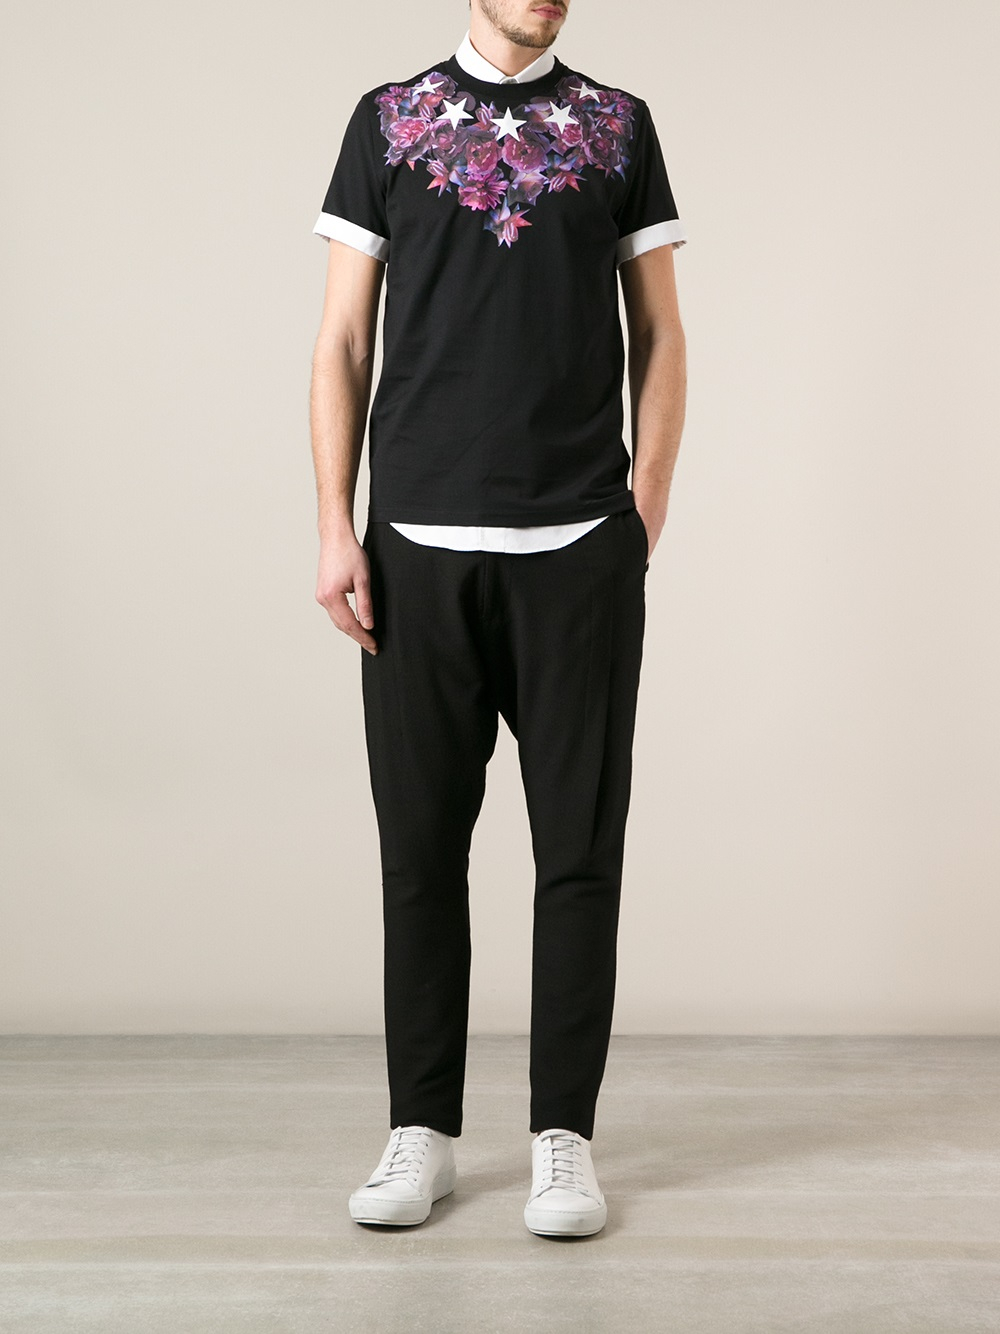 Givenchy flower and star print tshirt in black for men lyst for Givenchy 5 star shirt